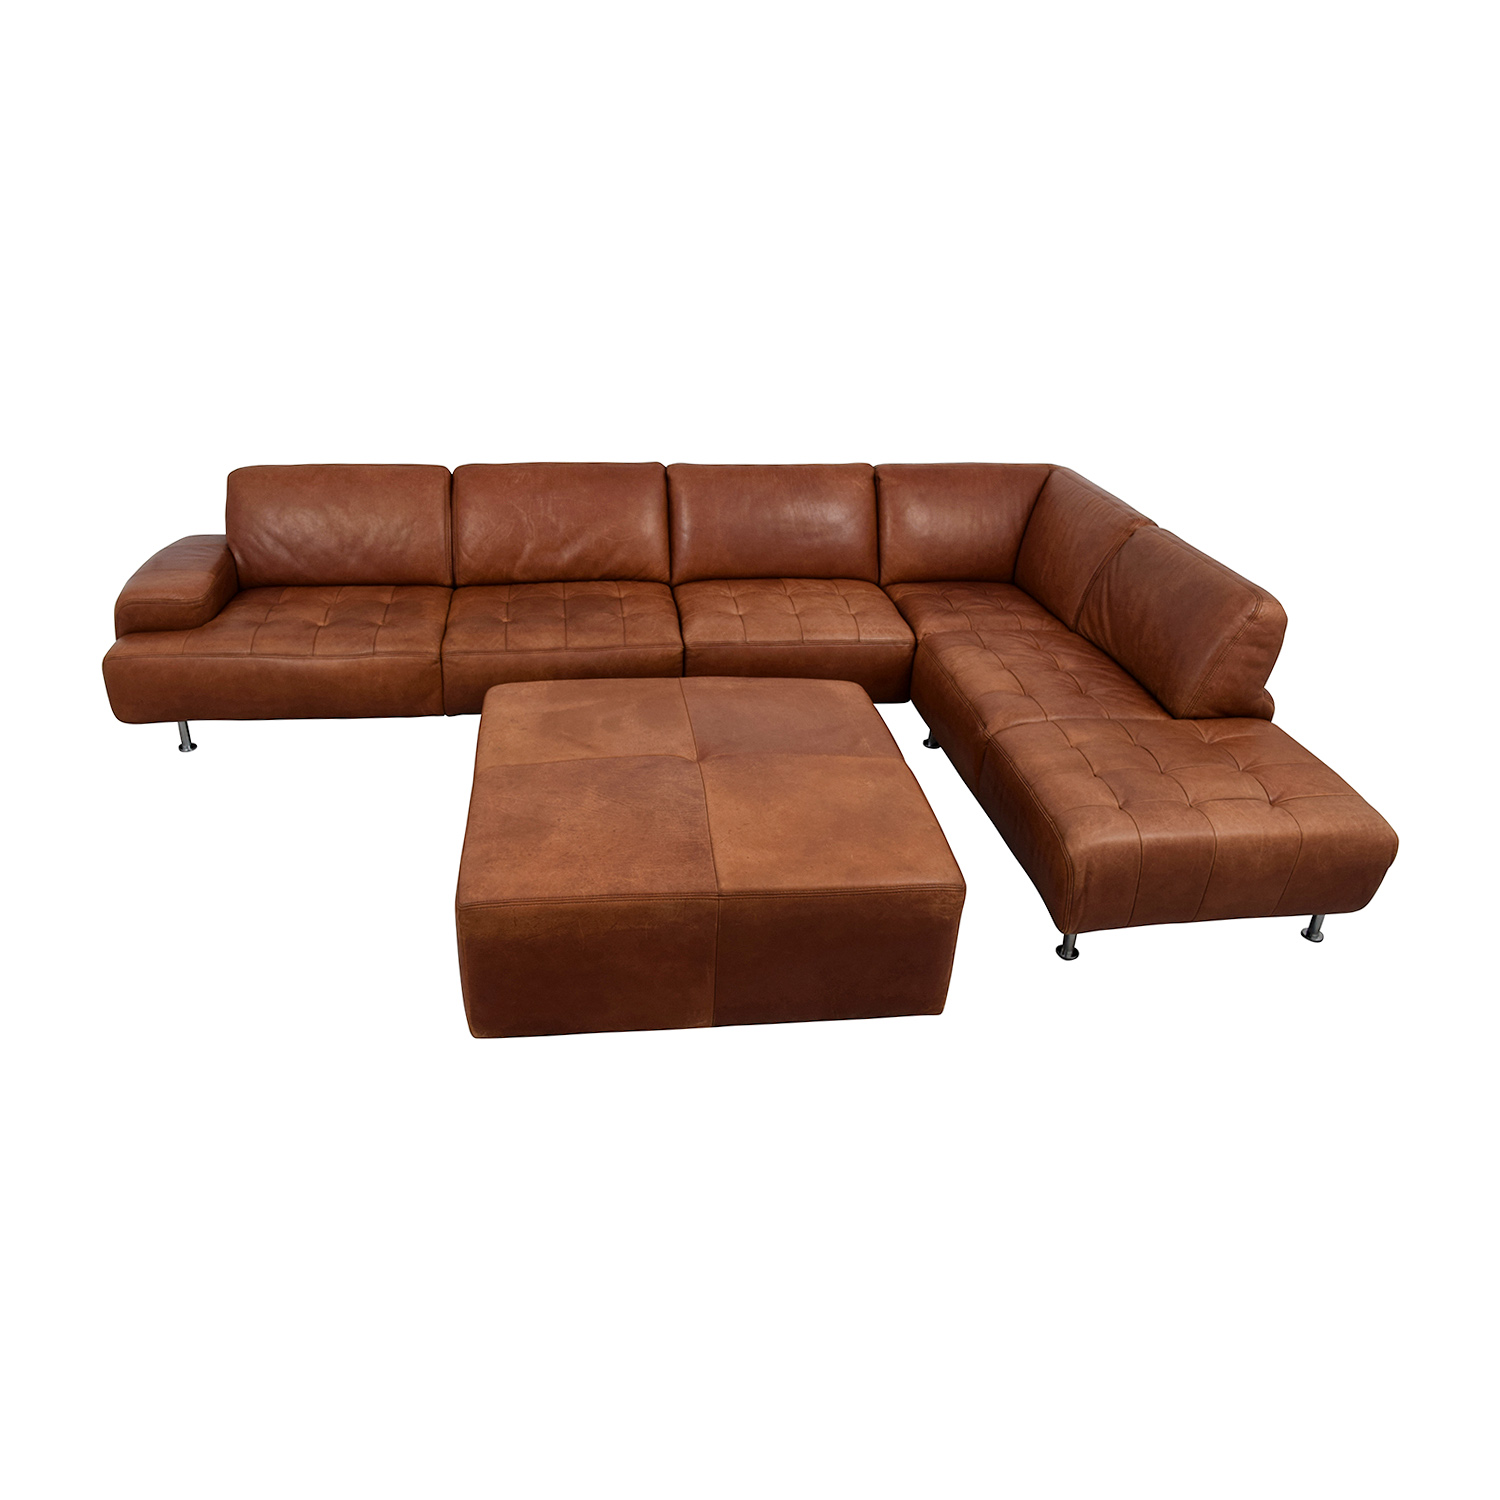 46 off w schillig w schillig leather sectional with ottoman buy w schillig leather sectional with ottoman w schillig parisarafo Images